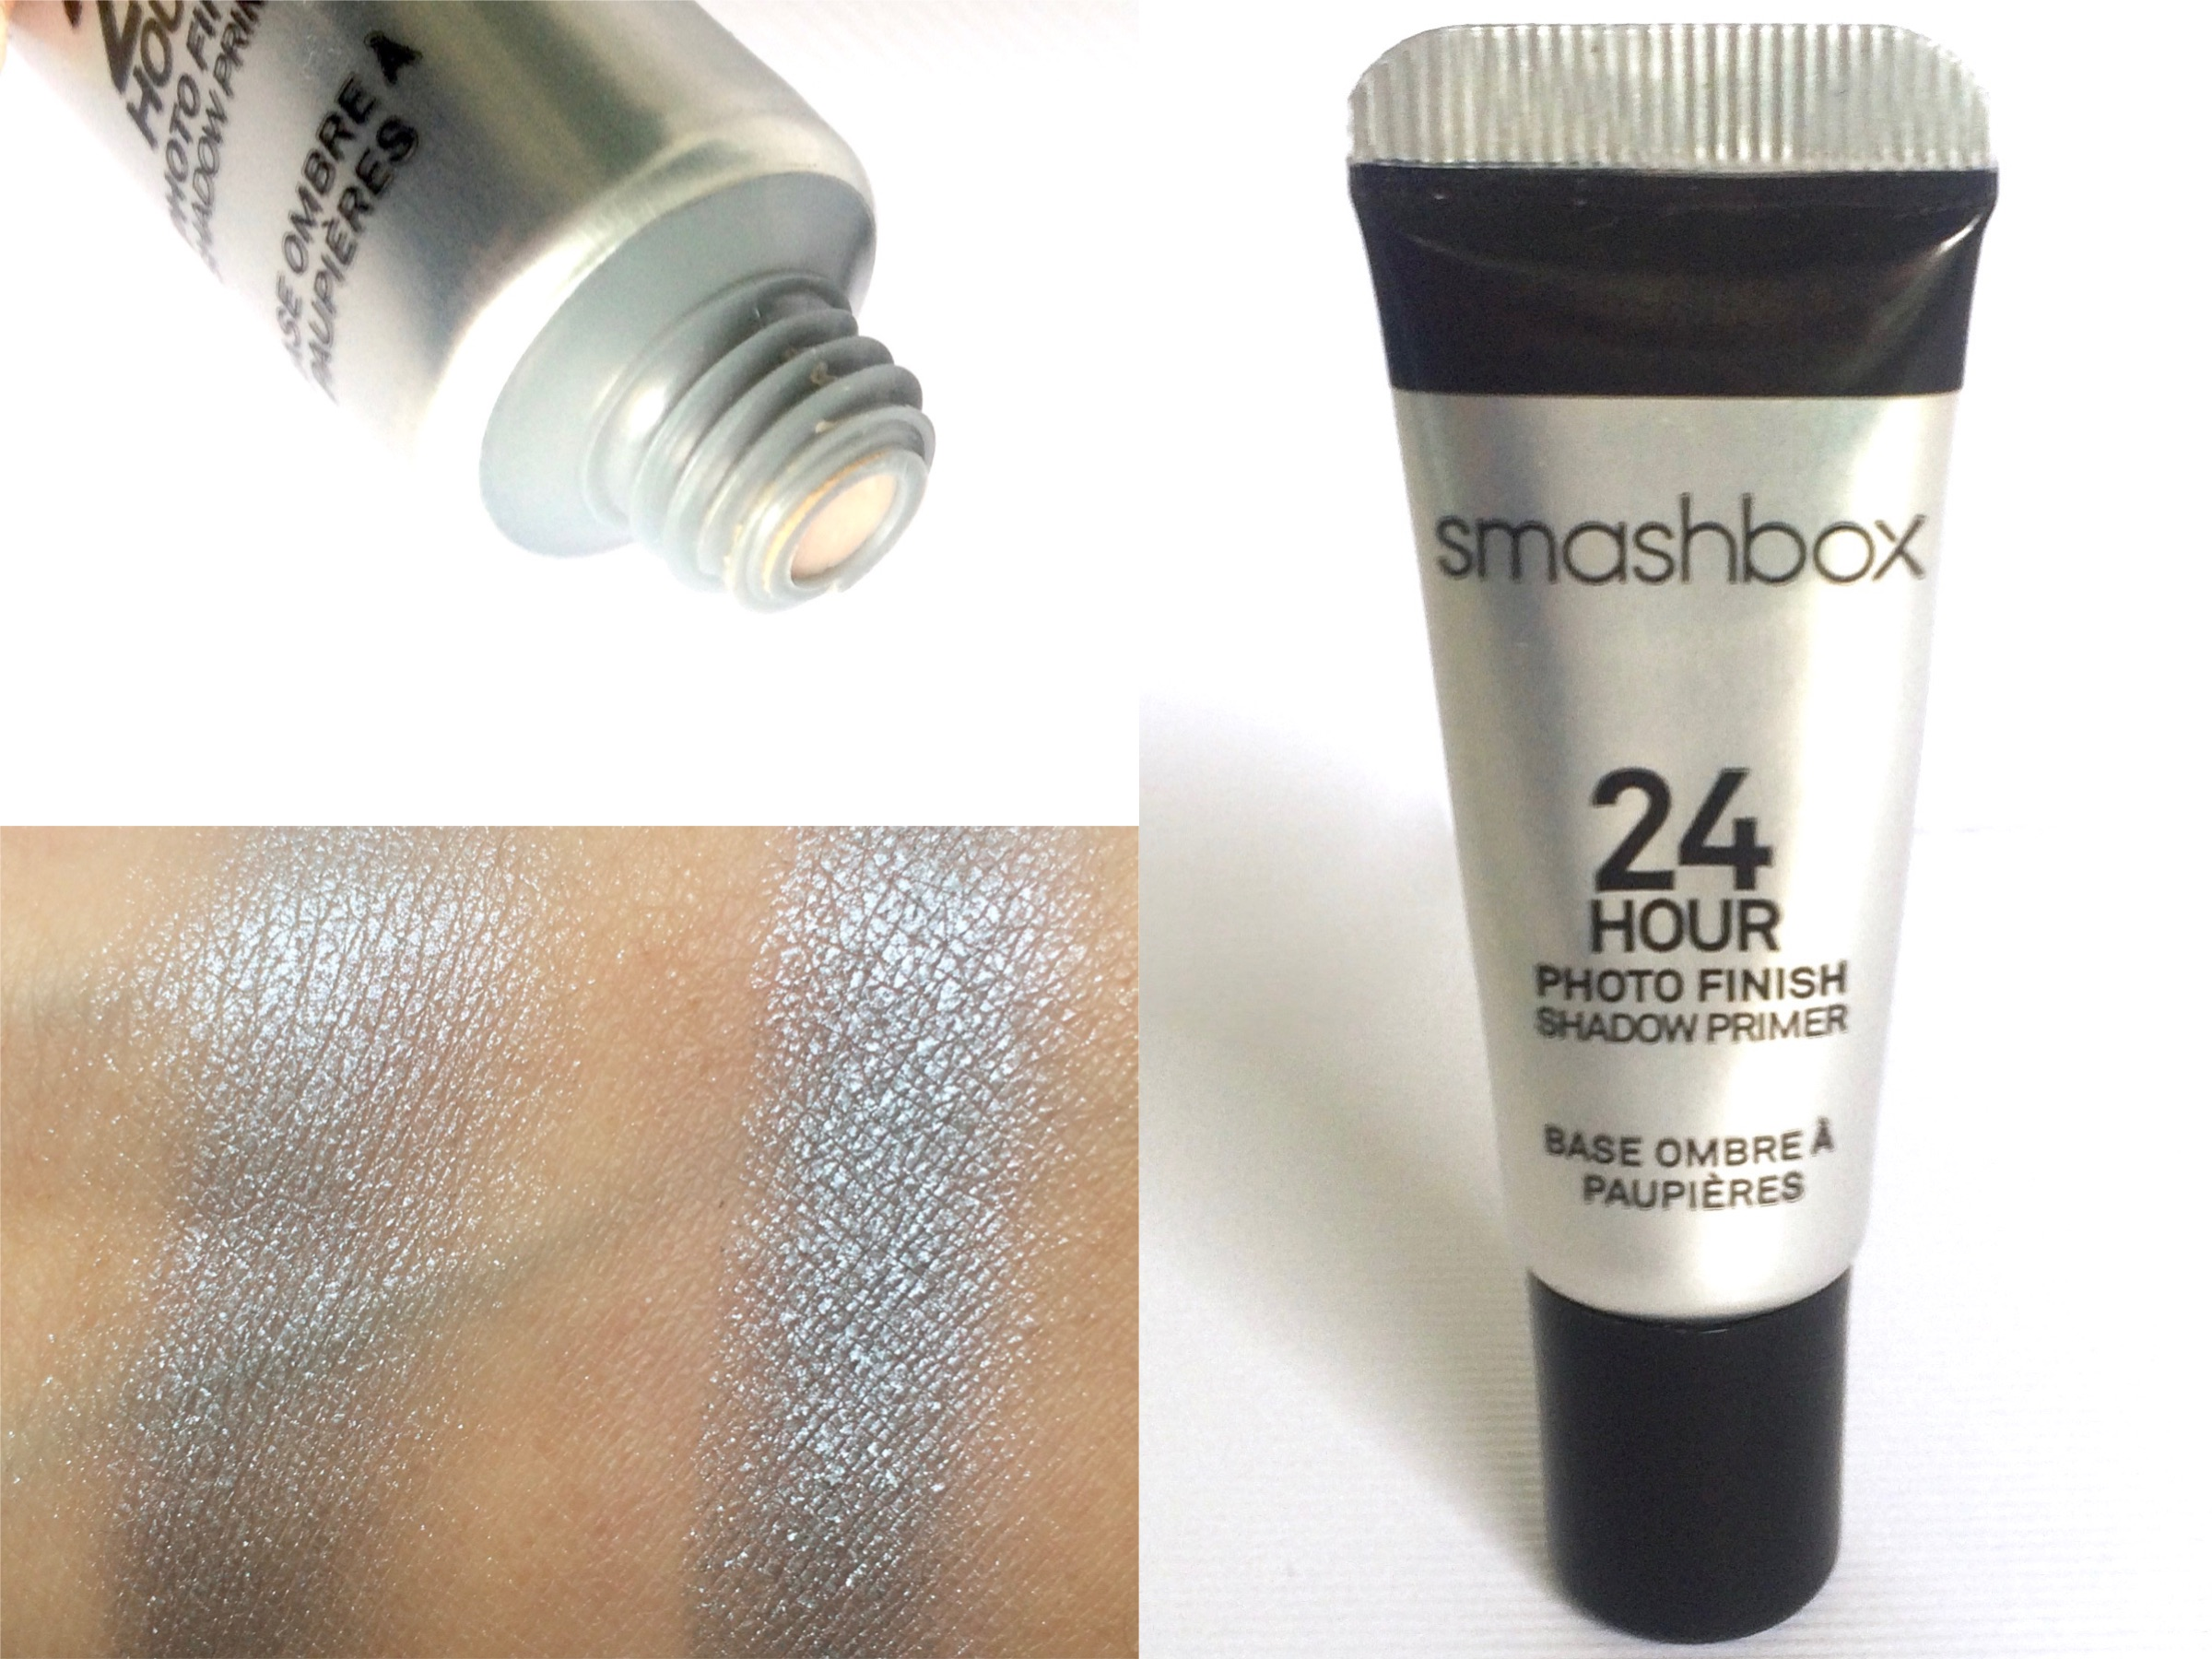 24 Hour Photo Finish Shadow Primer by Smashbox #19